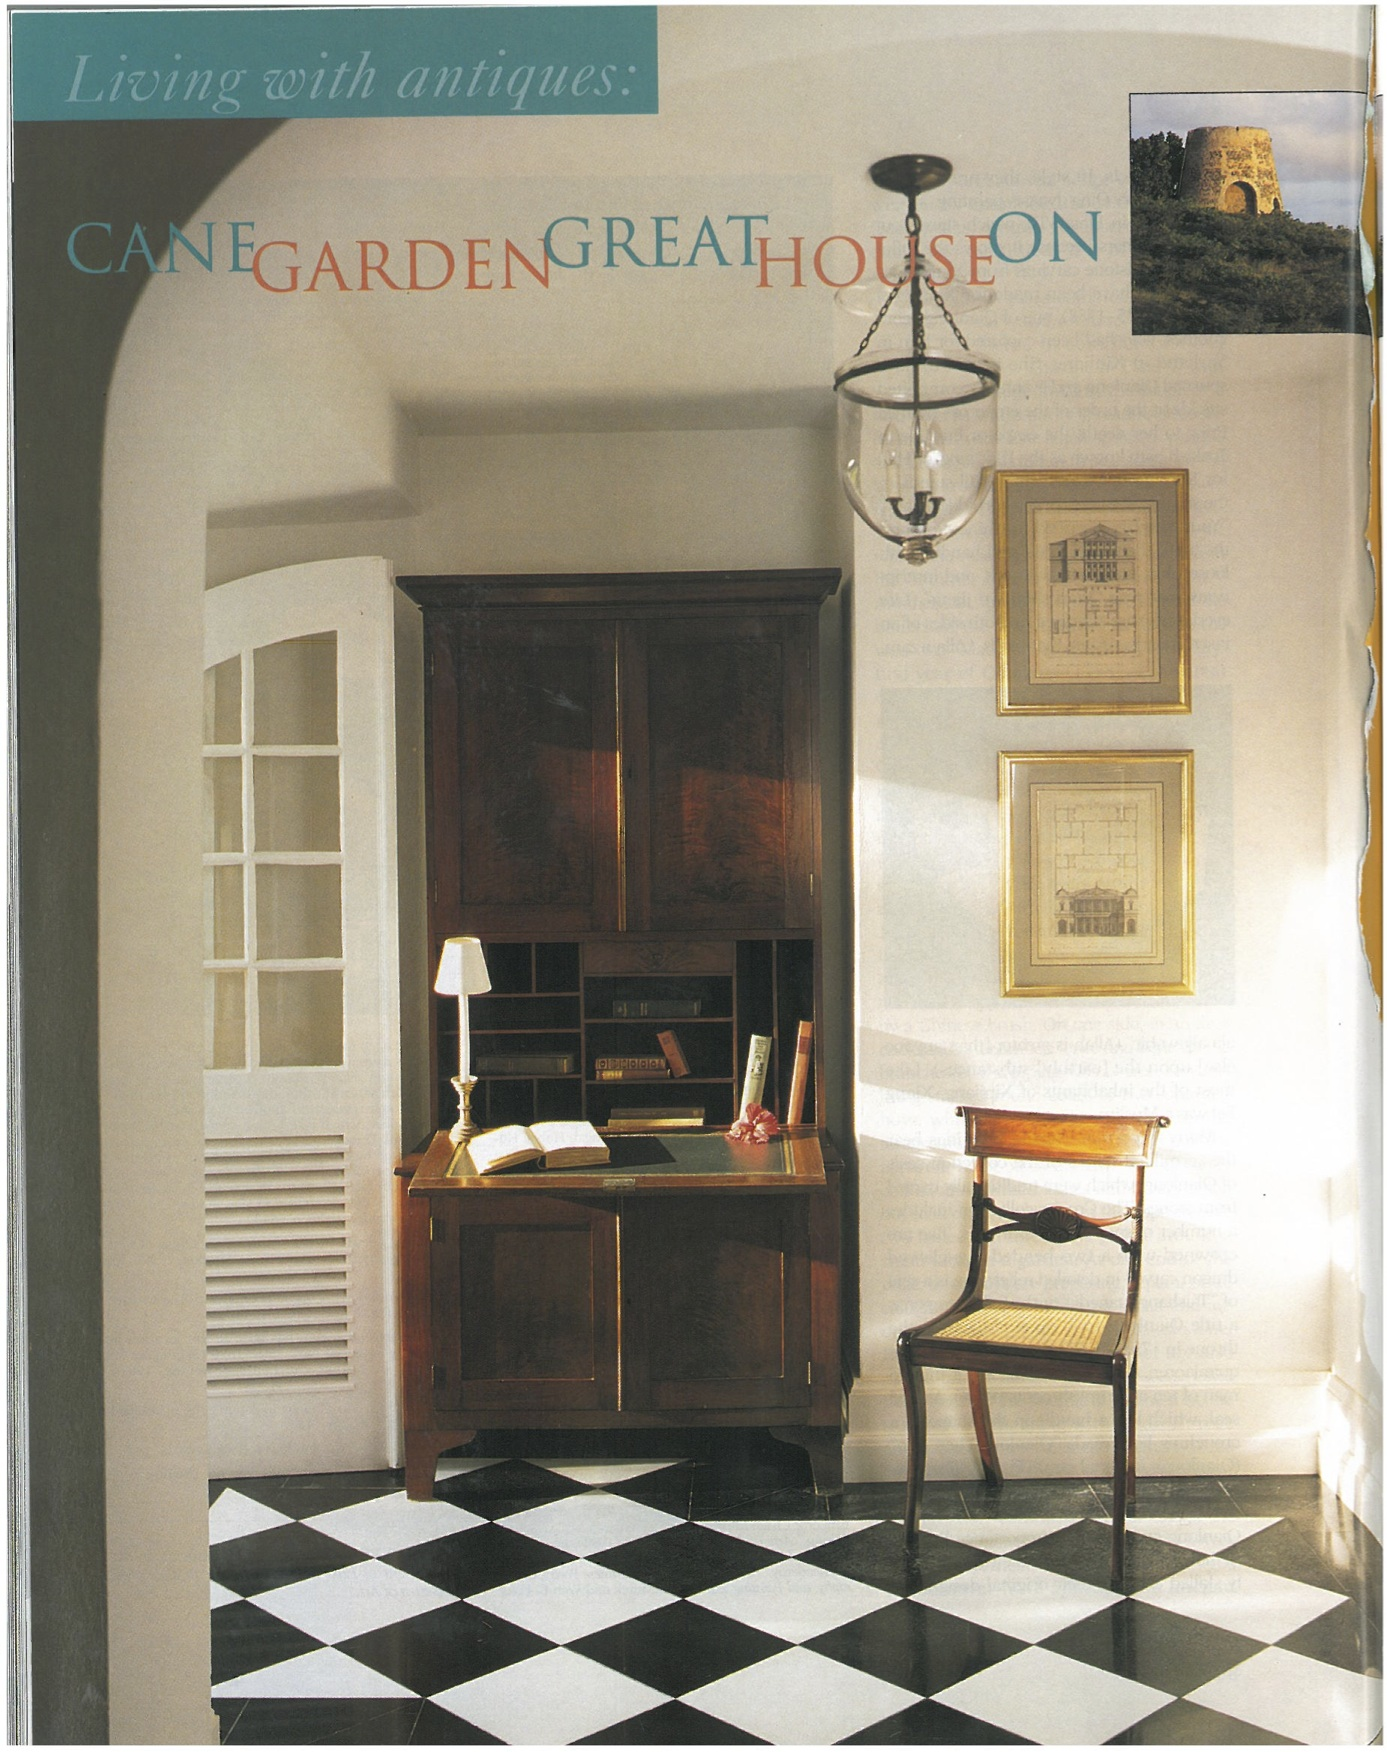 2000-March-Living-with-antiques-Cane-Garden-Great-House-on-STX-USVI-The-Magazine-Antiques-cover